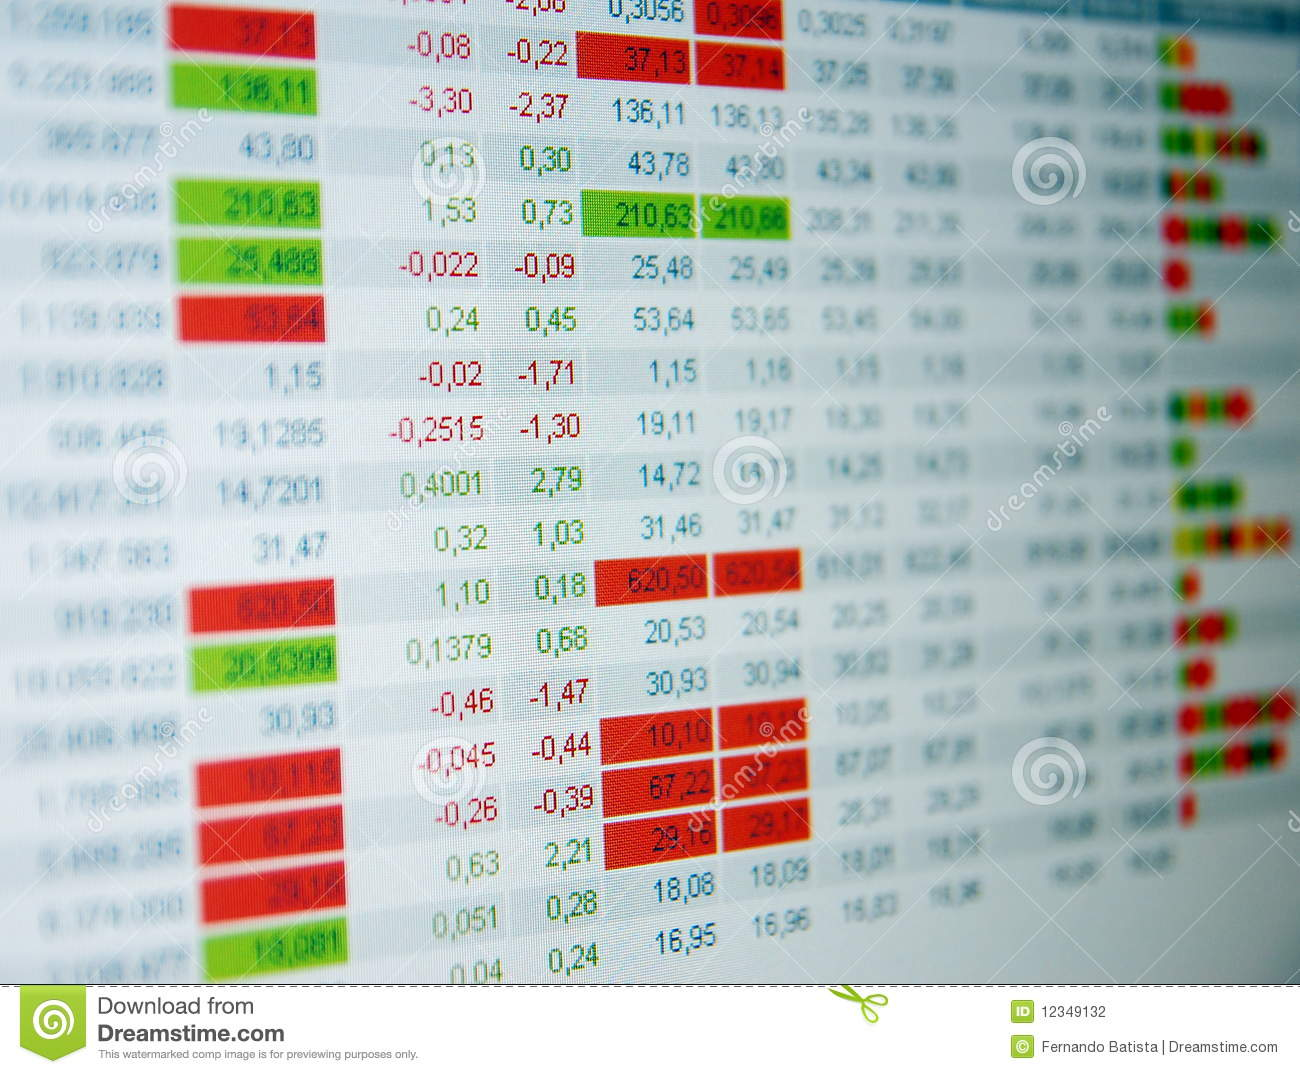 Stock quotes, real time quotes at the stock exchange, market.